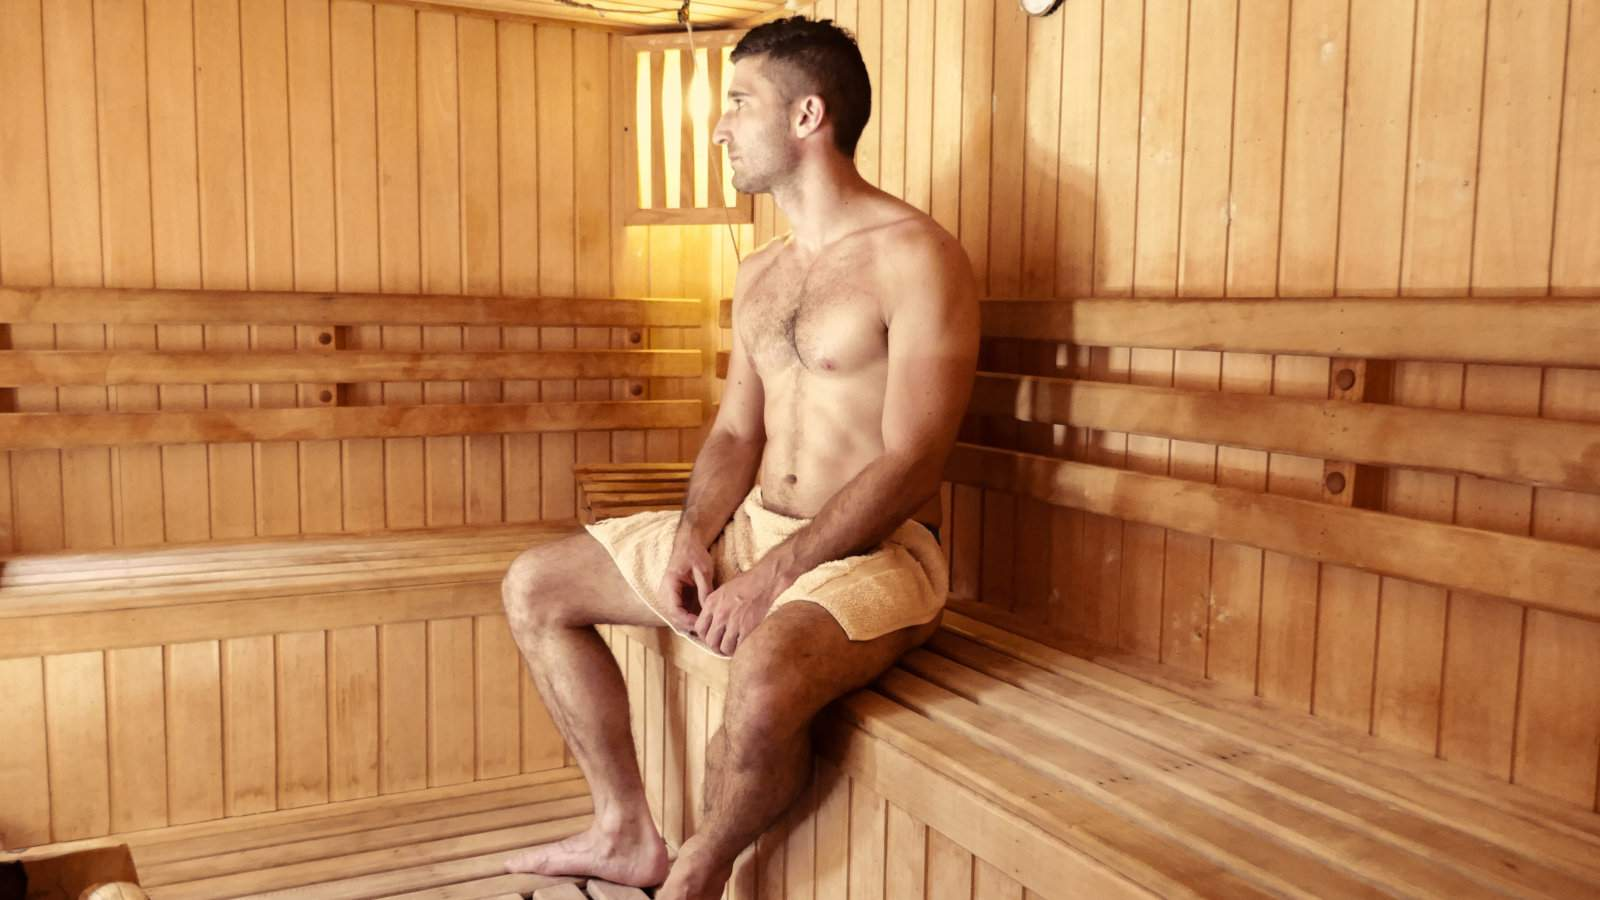 Find out which are the best gay saunas in Barcelona, for meeting others or just relaxing